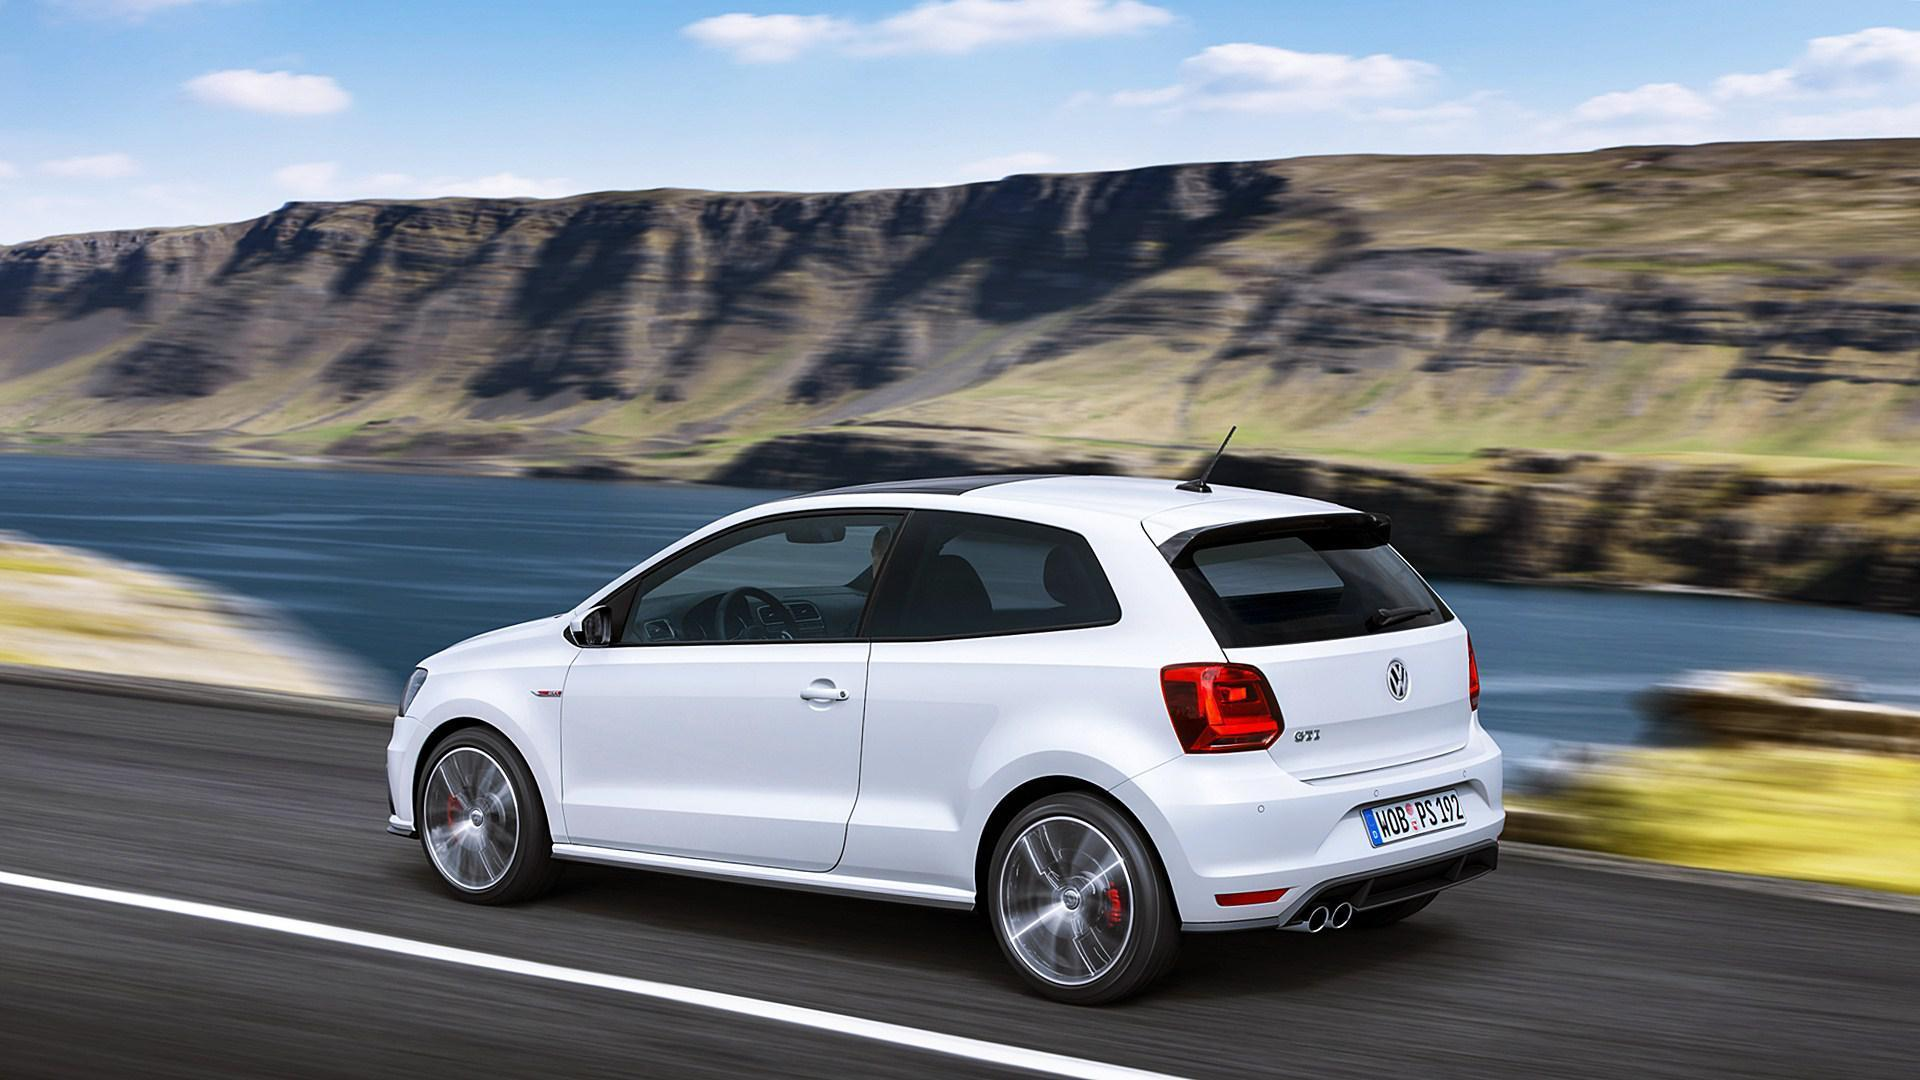 Vw Polo Wallpapers Wallpaper Cave